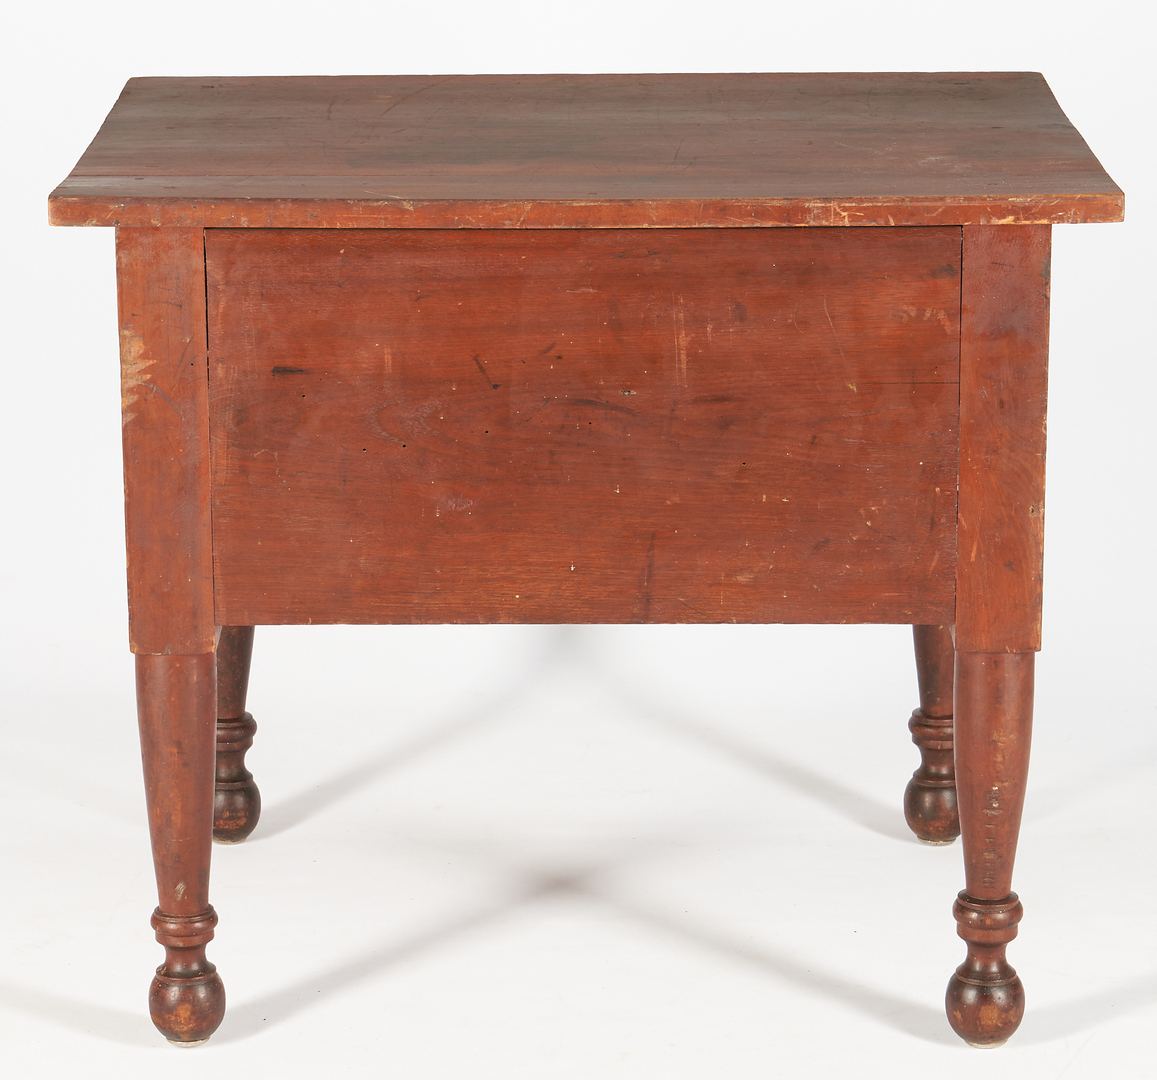 Lot 202: Southern Sugar Table or Low Work Table